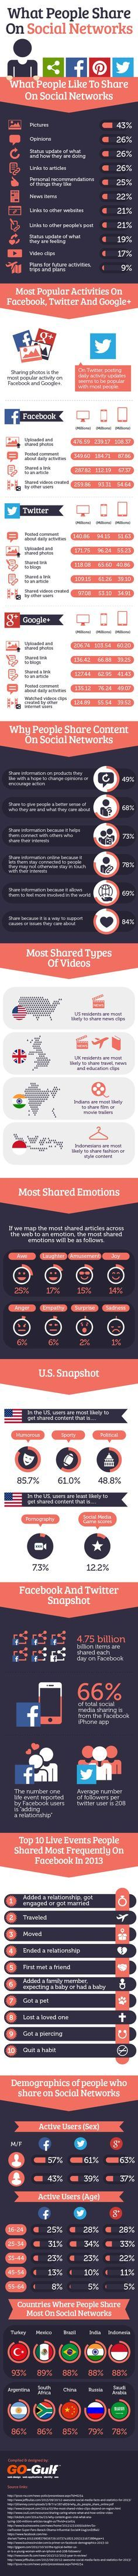 What people share in Social Networks?   #SocialMedia